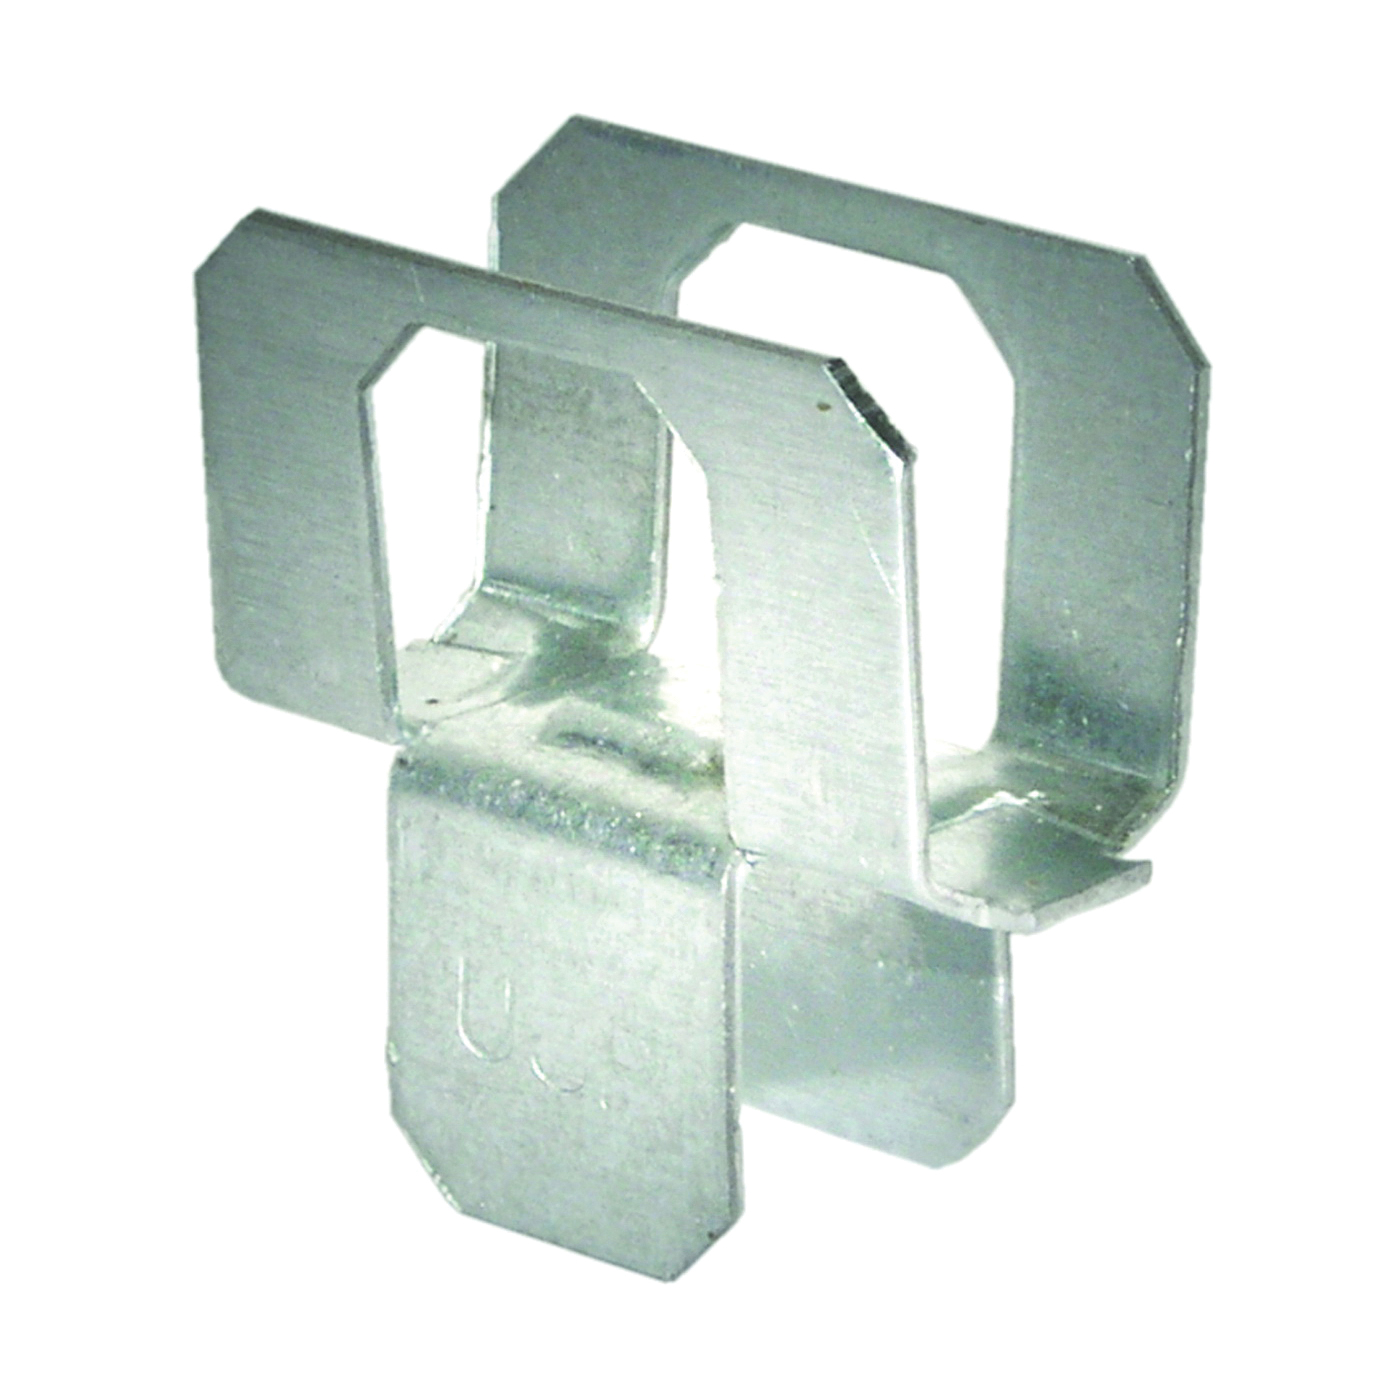 Picture of MiTek PC12-BMC Plywood Clip, 20 Thick Material, Steel, G90 Galvanized